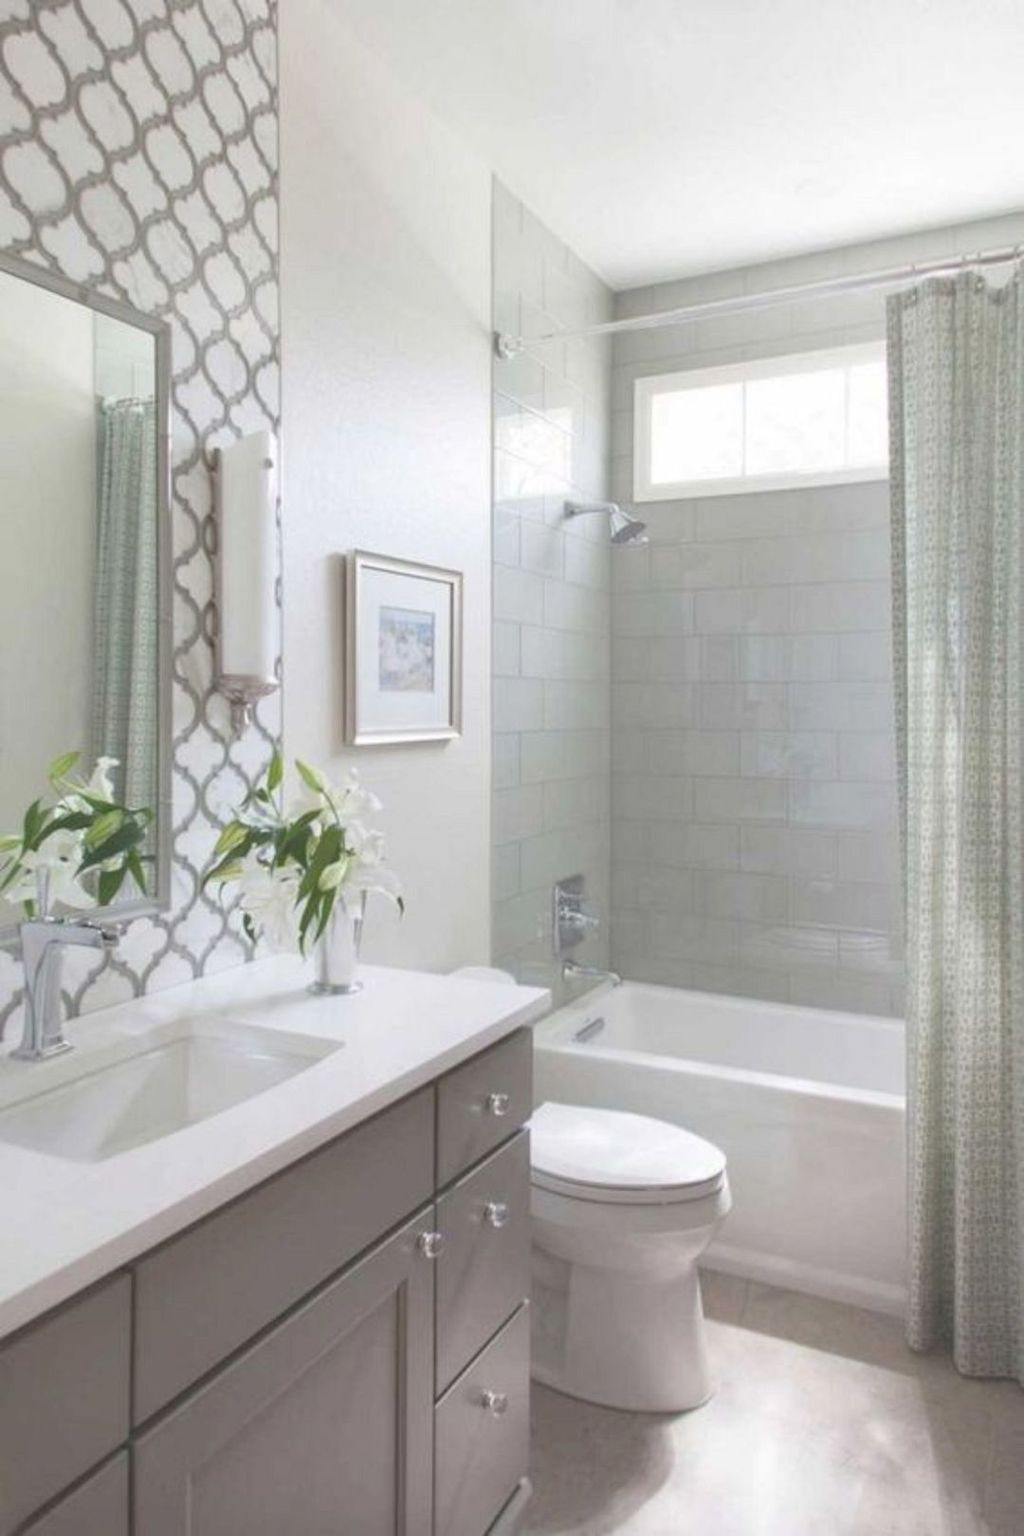 38 Simple Tiny Space Bathroom Ideas On A Budget | Tiny spaces ...